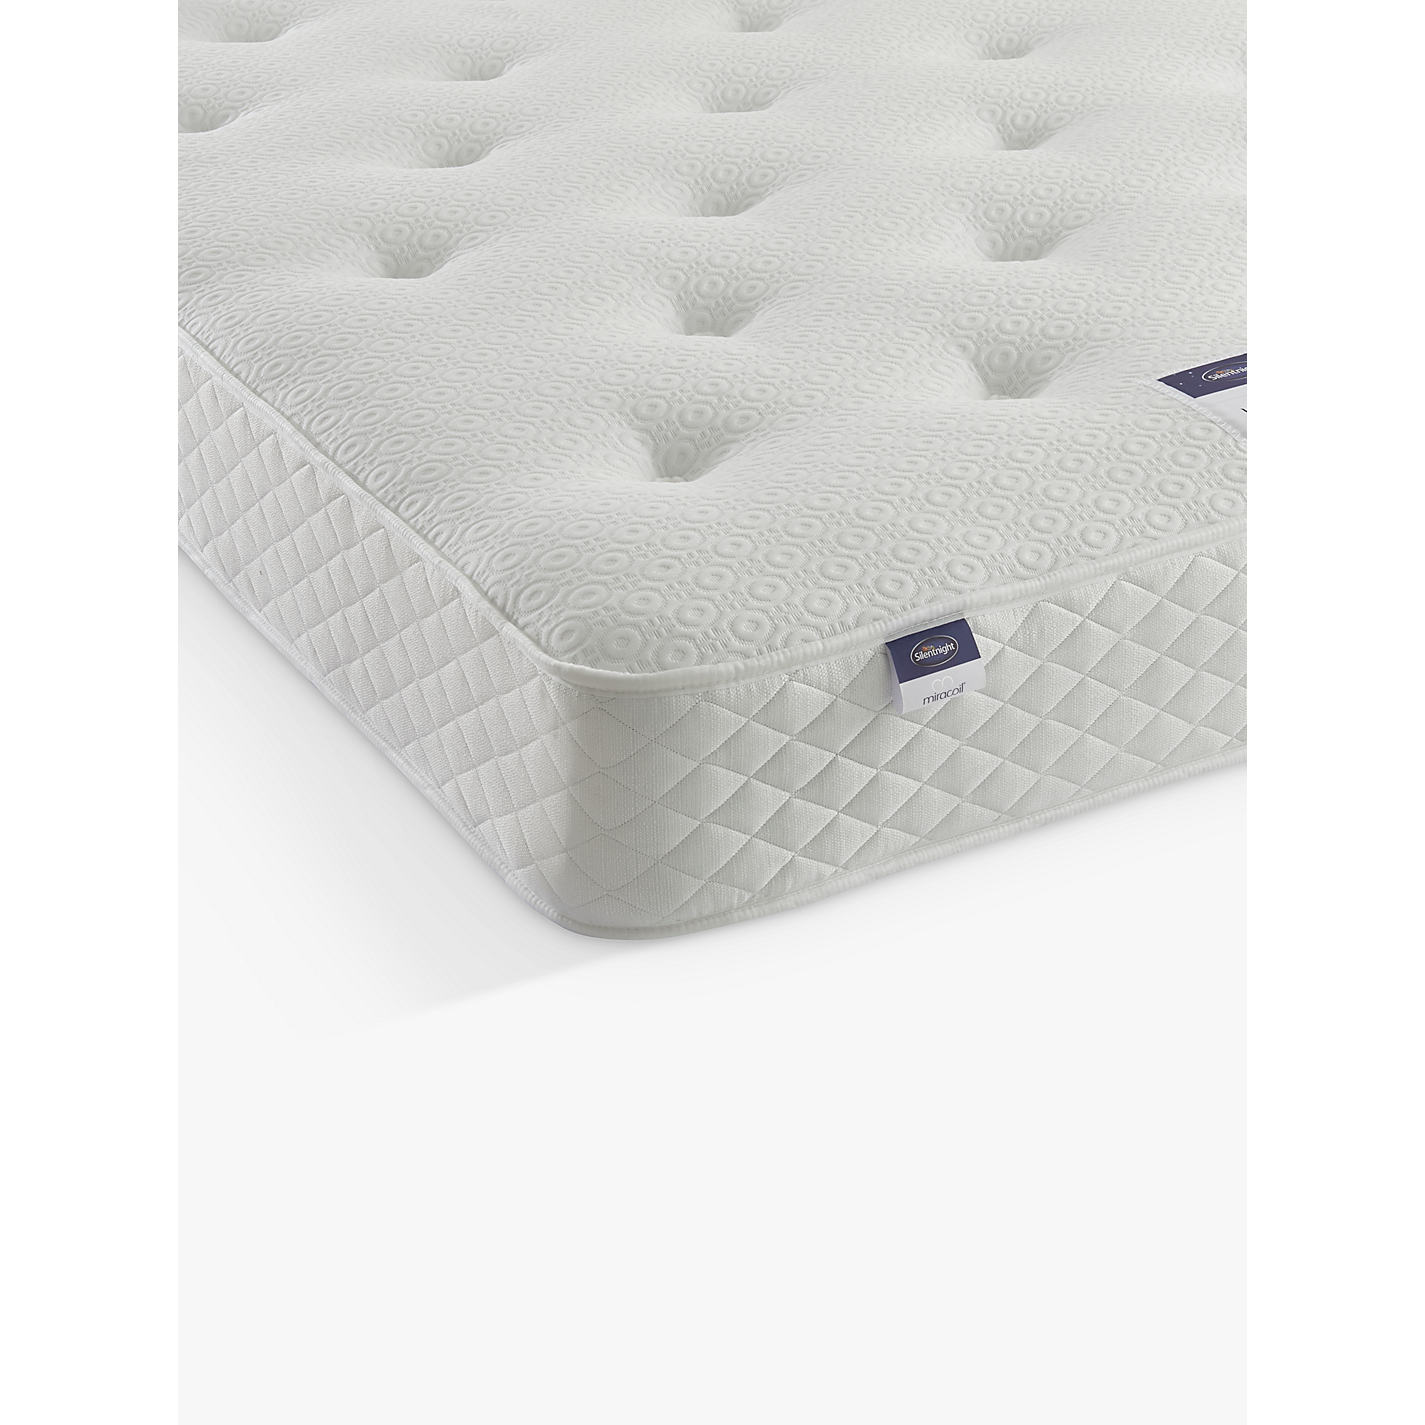 Buy Silentnight Miracoil Ortho Open Spring Mattress Firm Double